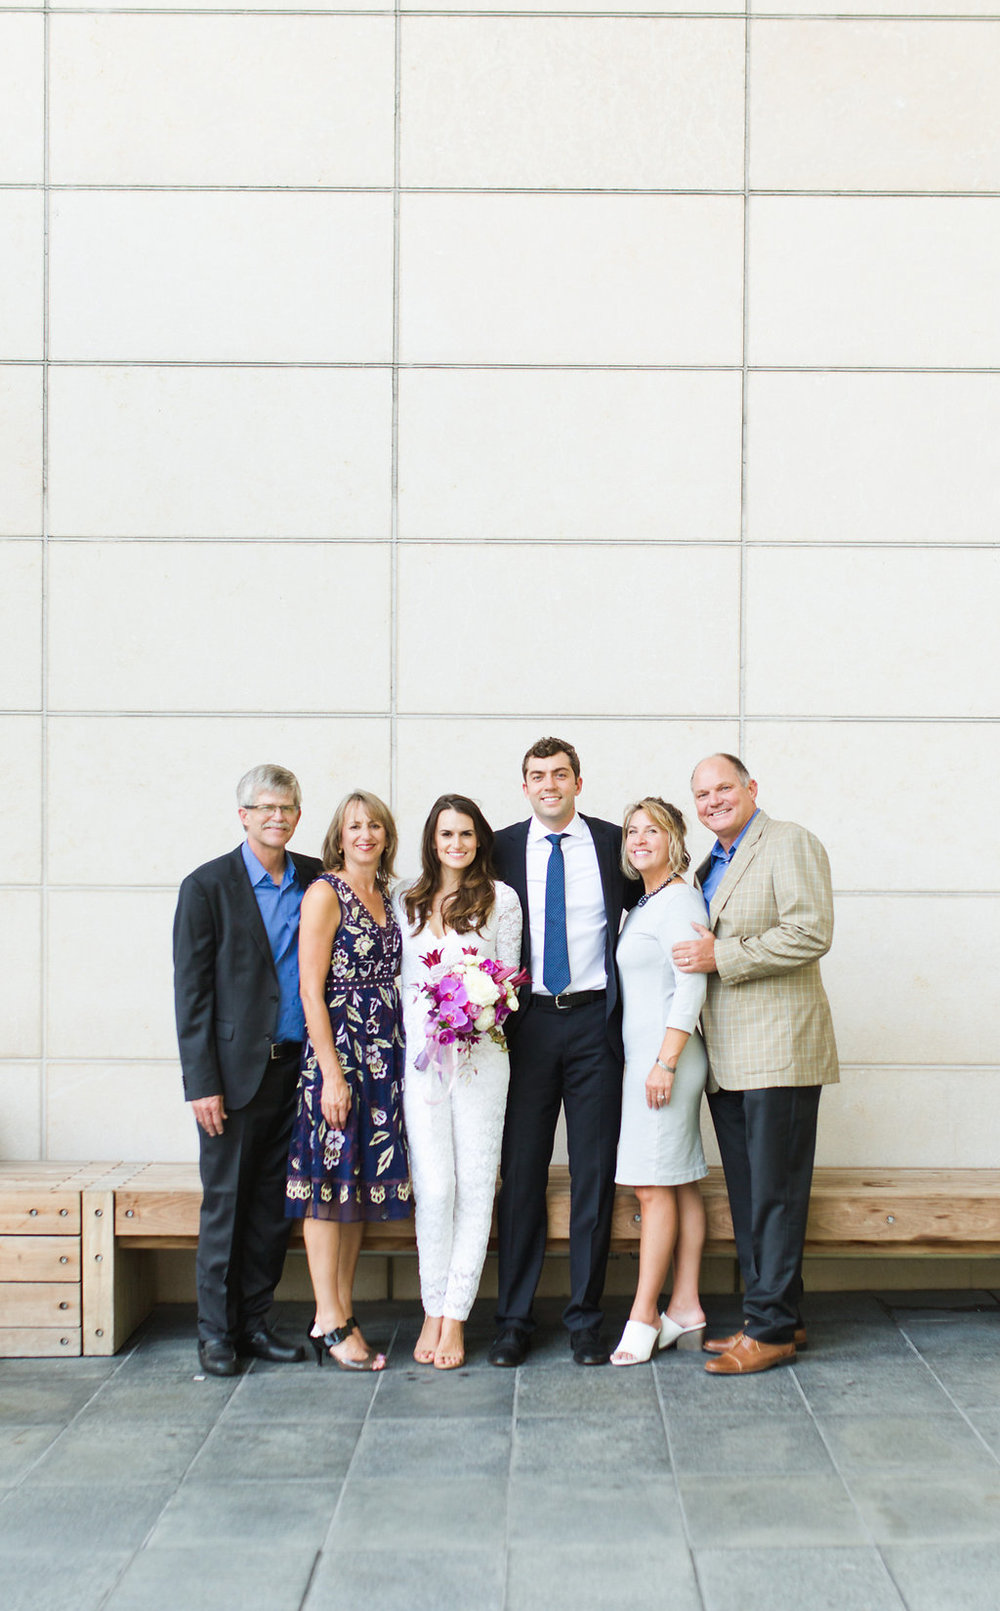 Seattle Courthouse Wedding | Seattle Municipal Court | Downtown Seattle Wedding | Intimate Elopement Wedding | Beautiful Simple Courthouse Wedding | Bride and Groom Portrait | White Wedding Jumpsuit Outfit | Bride and Groom with Parents | Family Formal Wedding Portrait | Mastin Labs Fuji 400